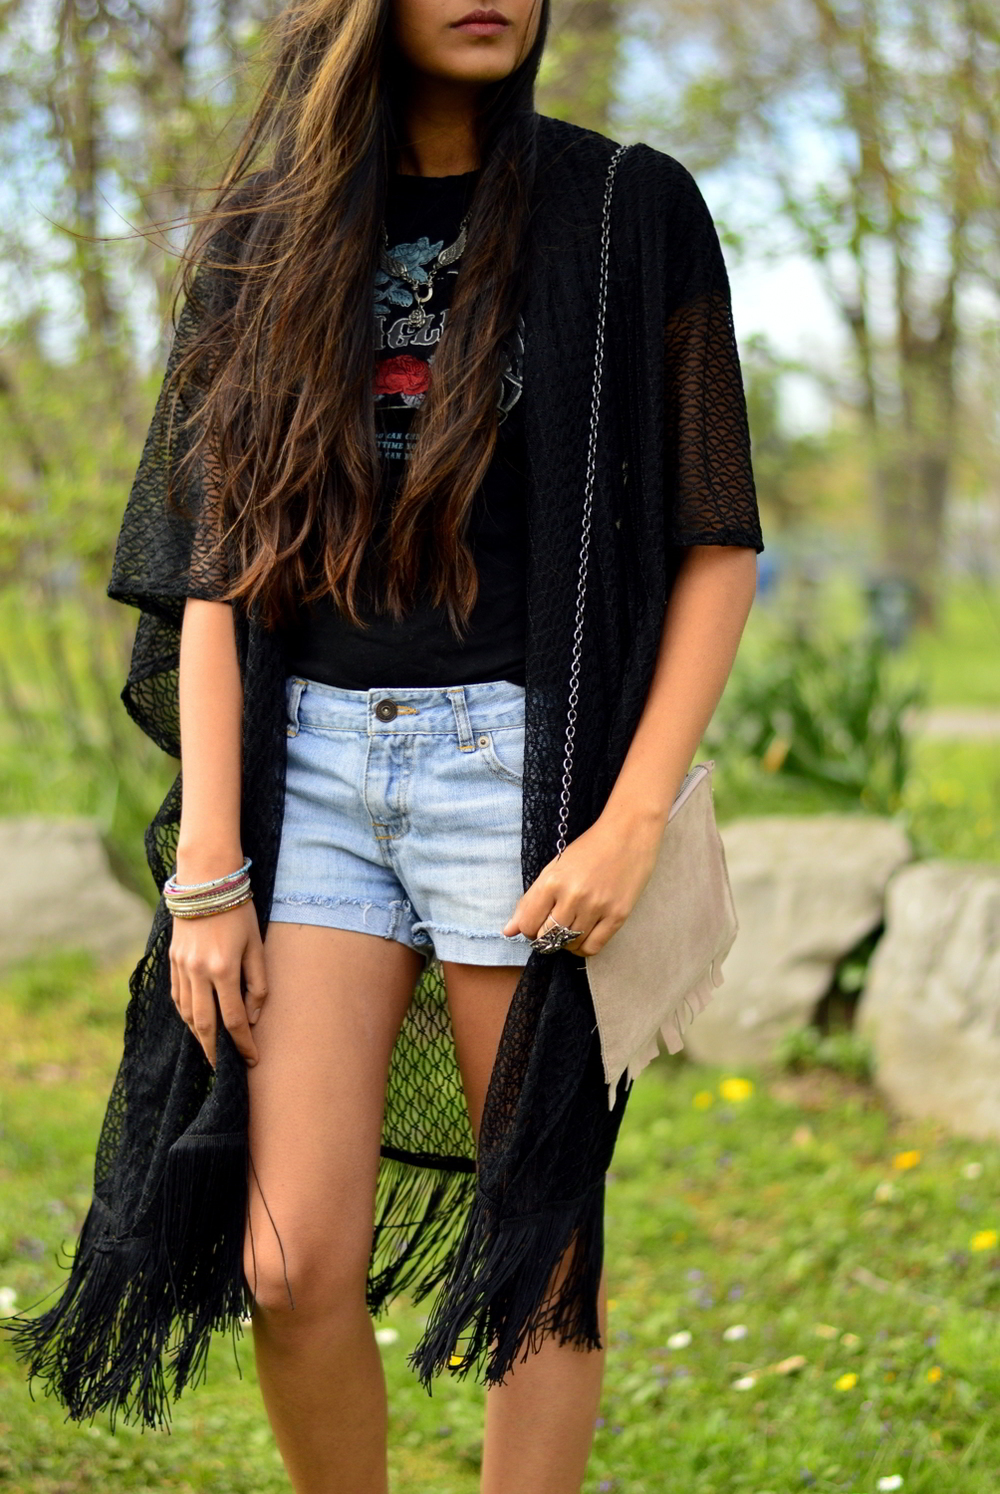 graphic-tee-fringe-boho-chic-casual-everyday-layers 4